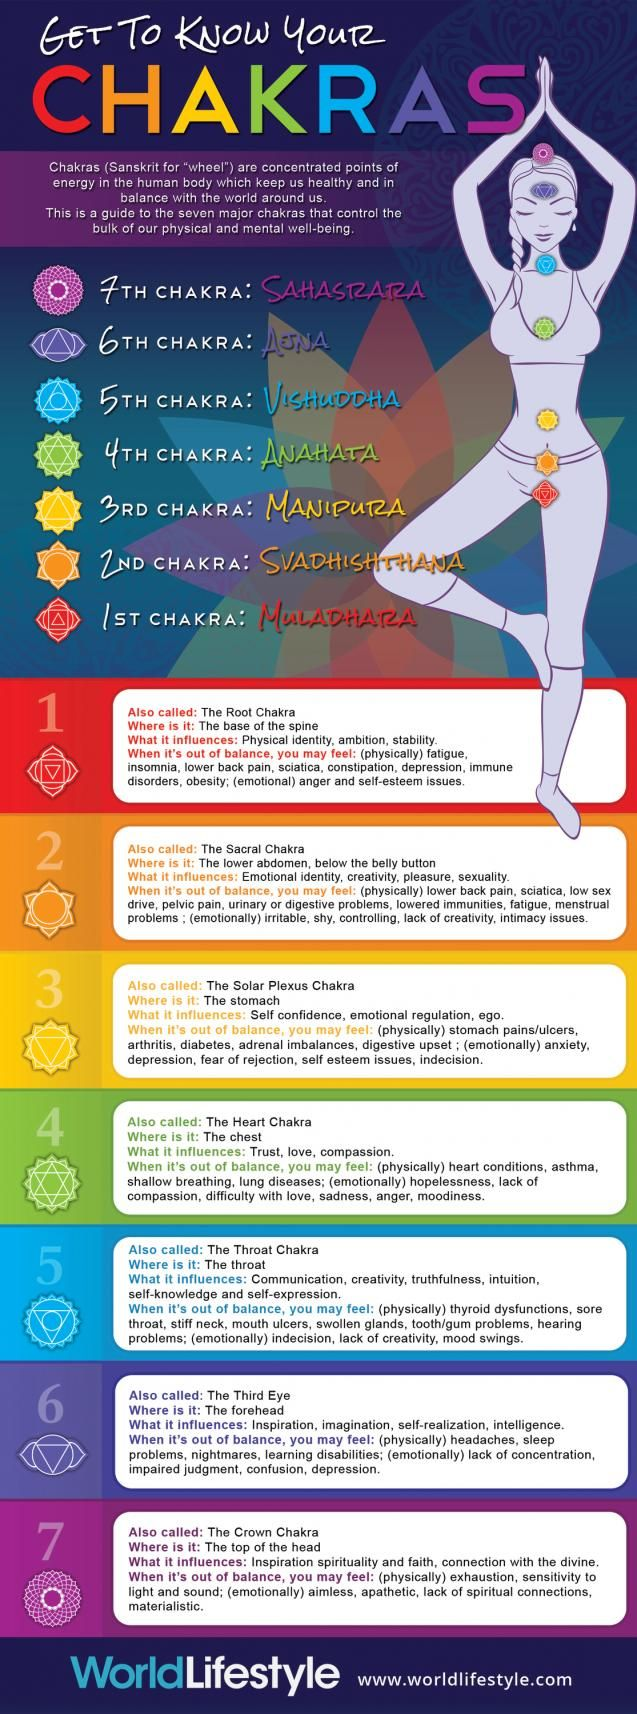 PICTORIAL: Get to Know Your Chakras - WorldLifestyle